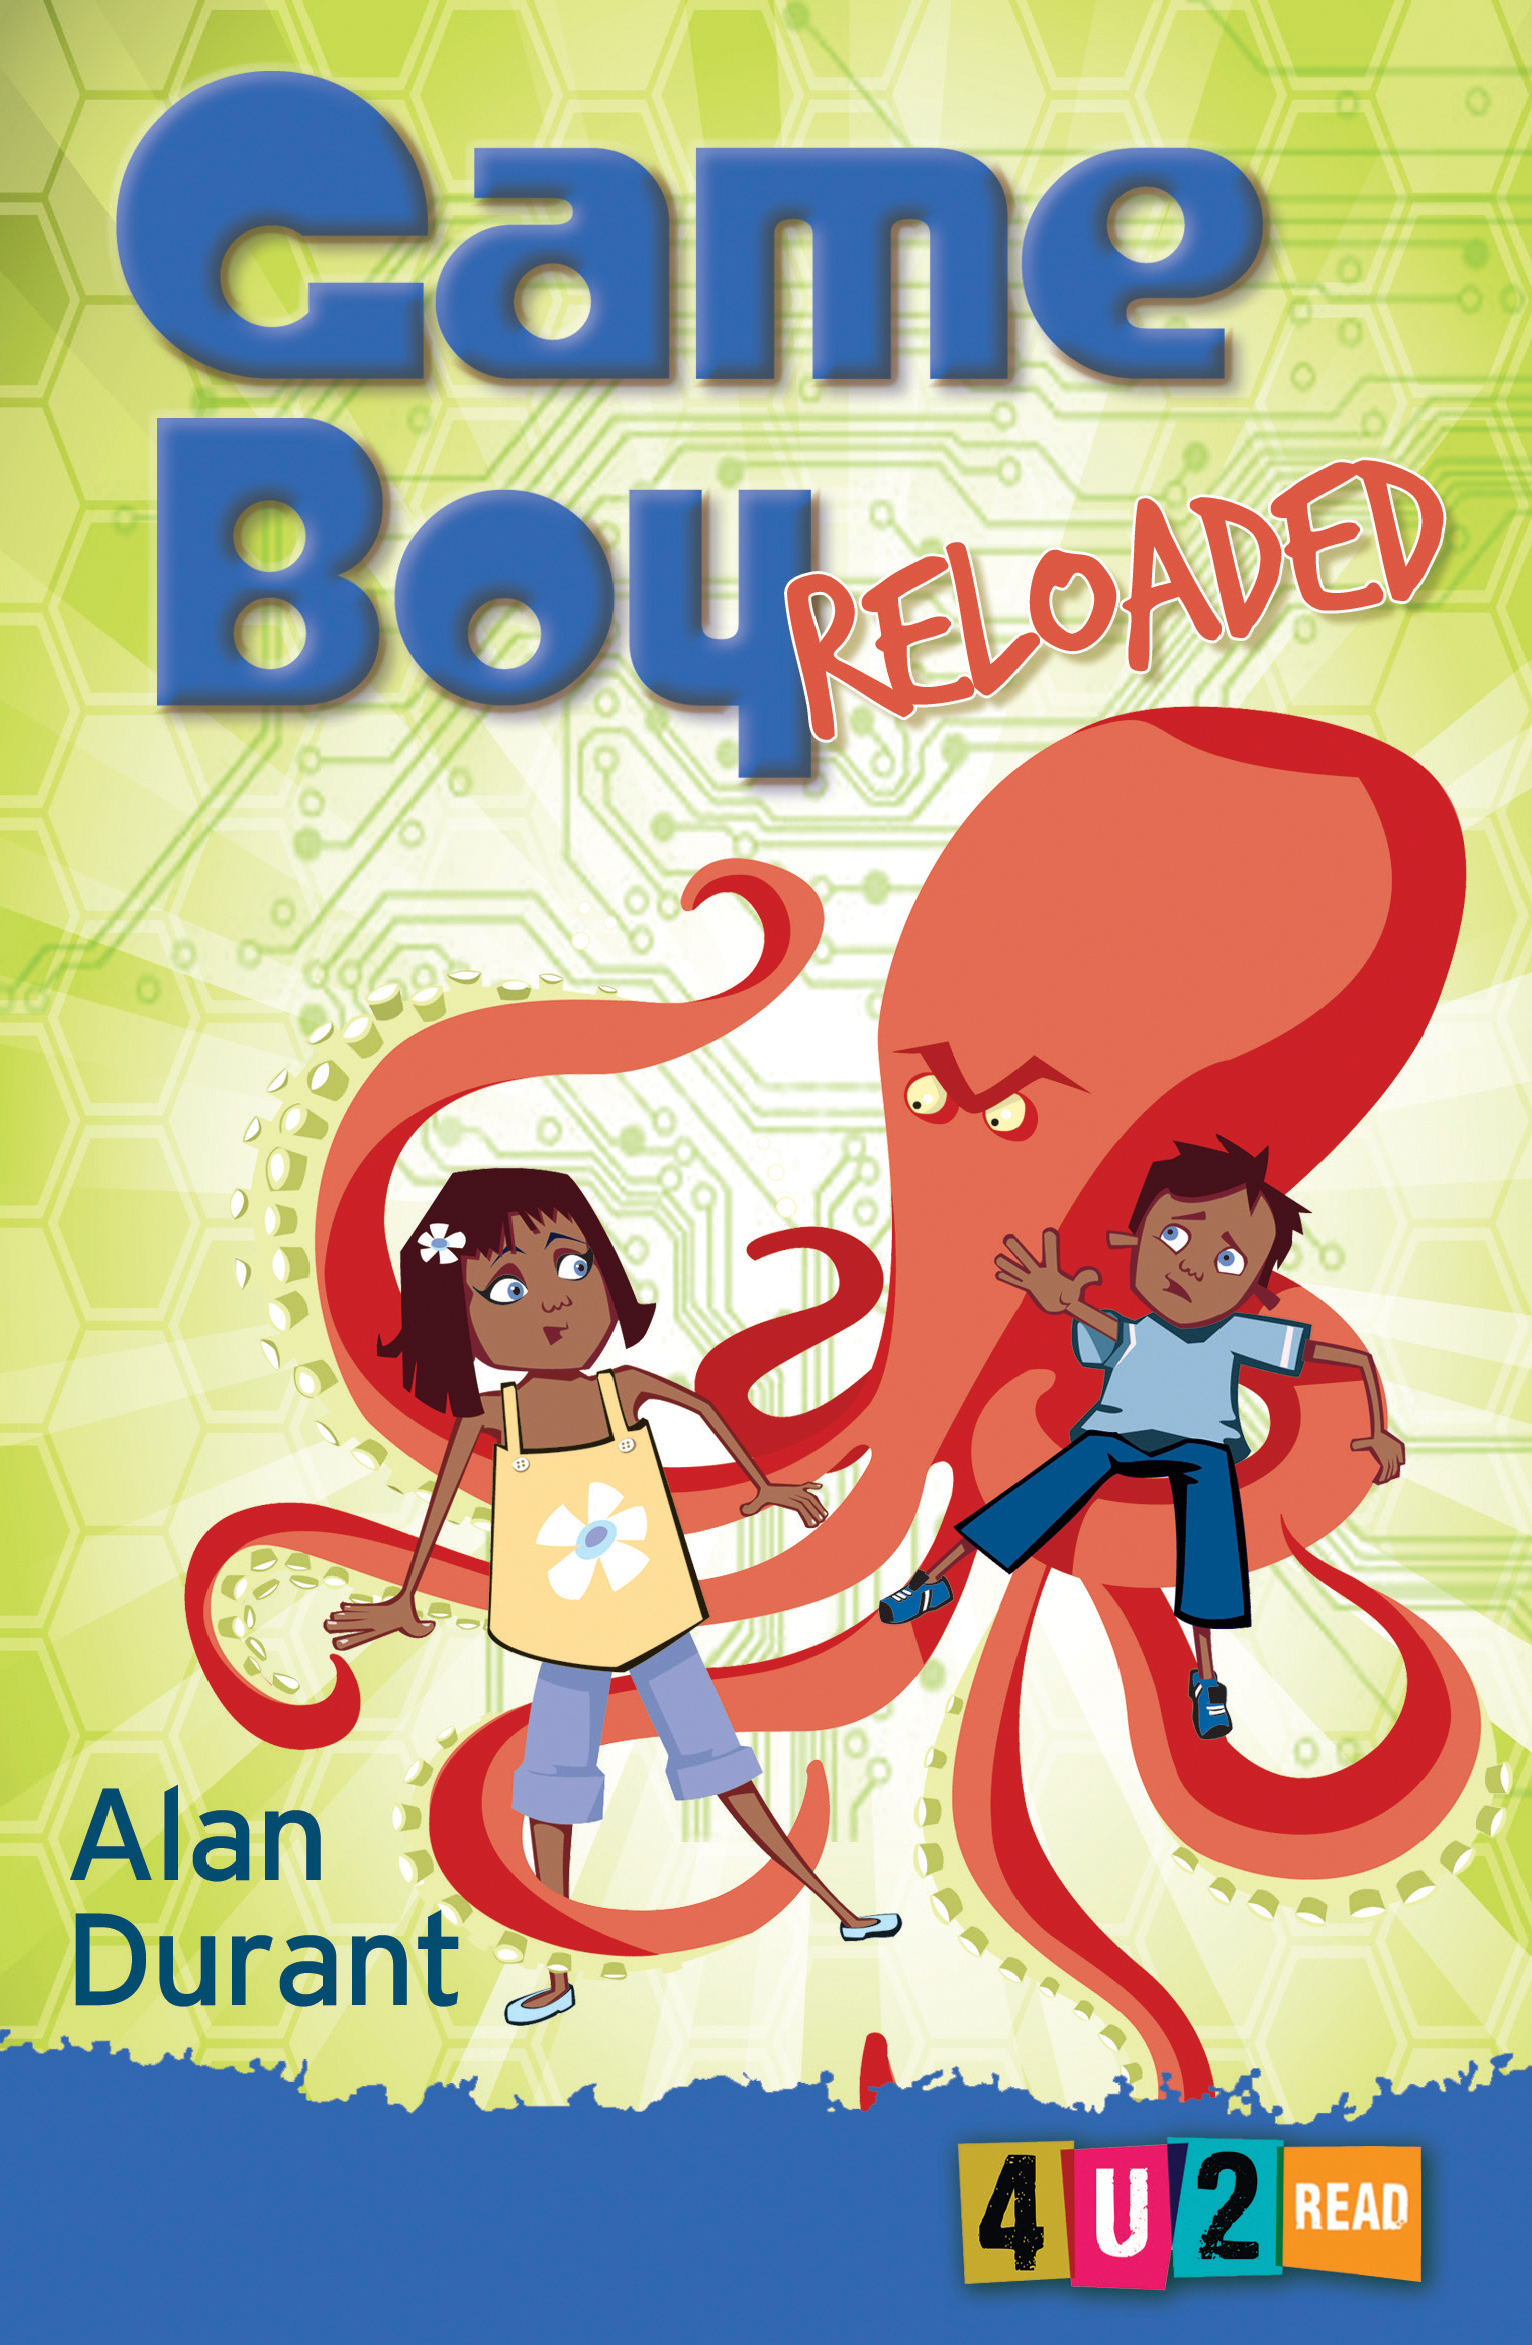 Children S Book Covers Alan Powers ~ Game boy reloaded alan durant illustrated by sue mason